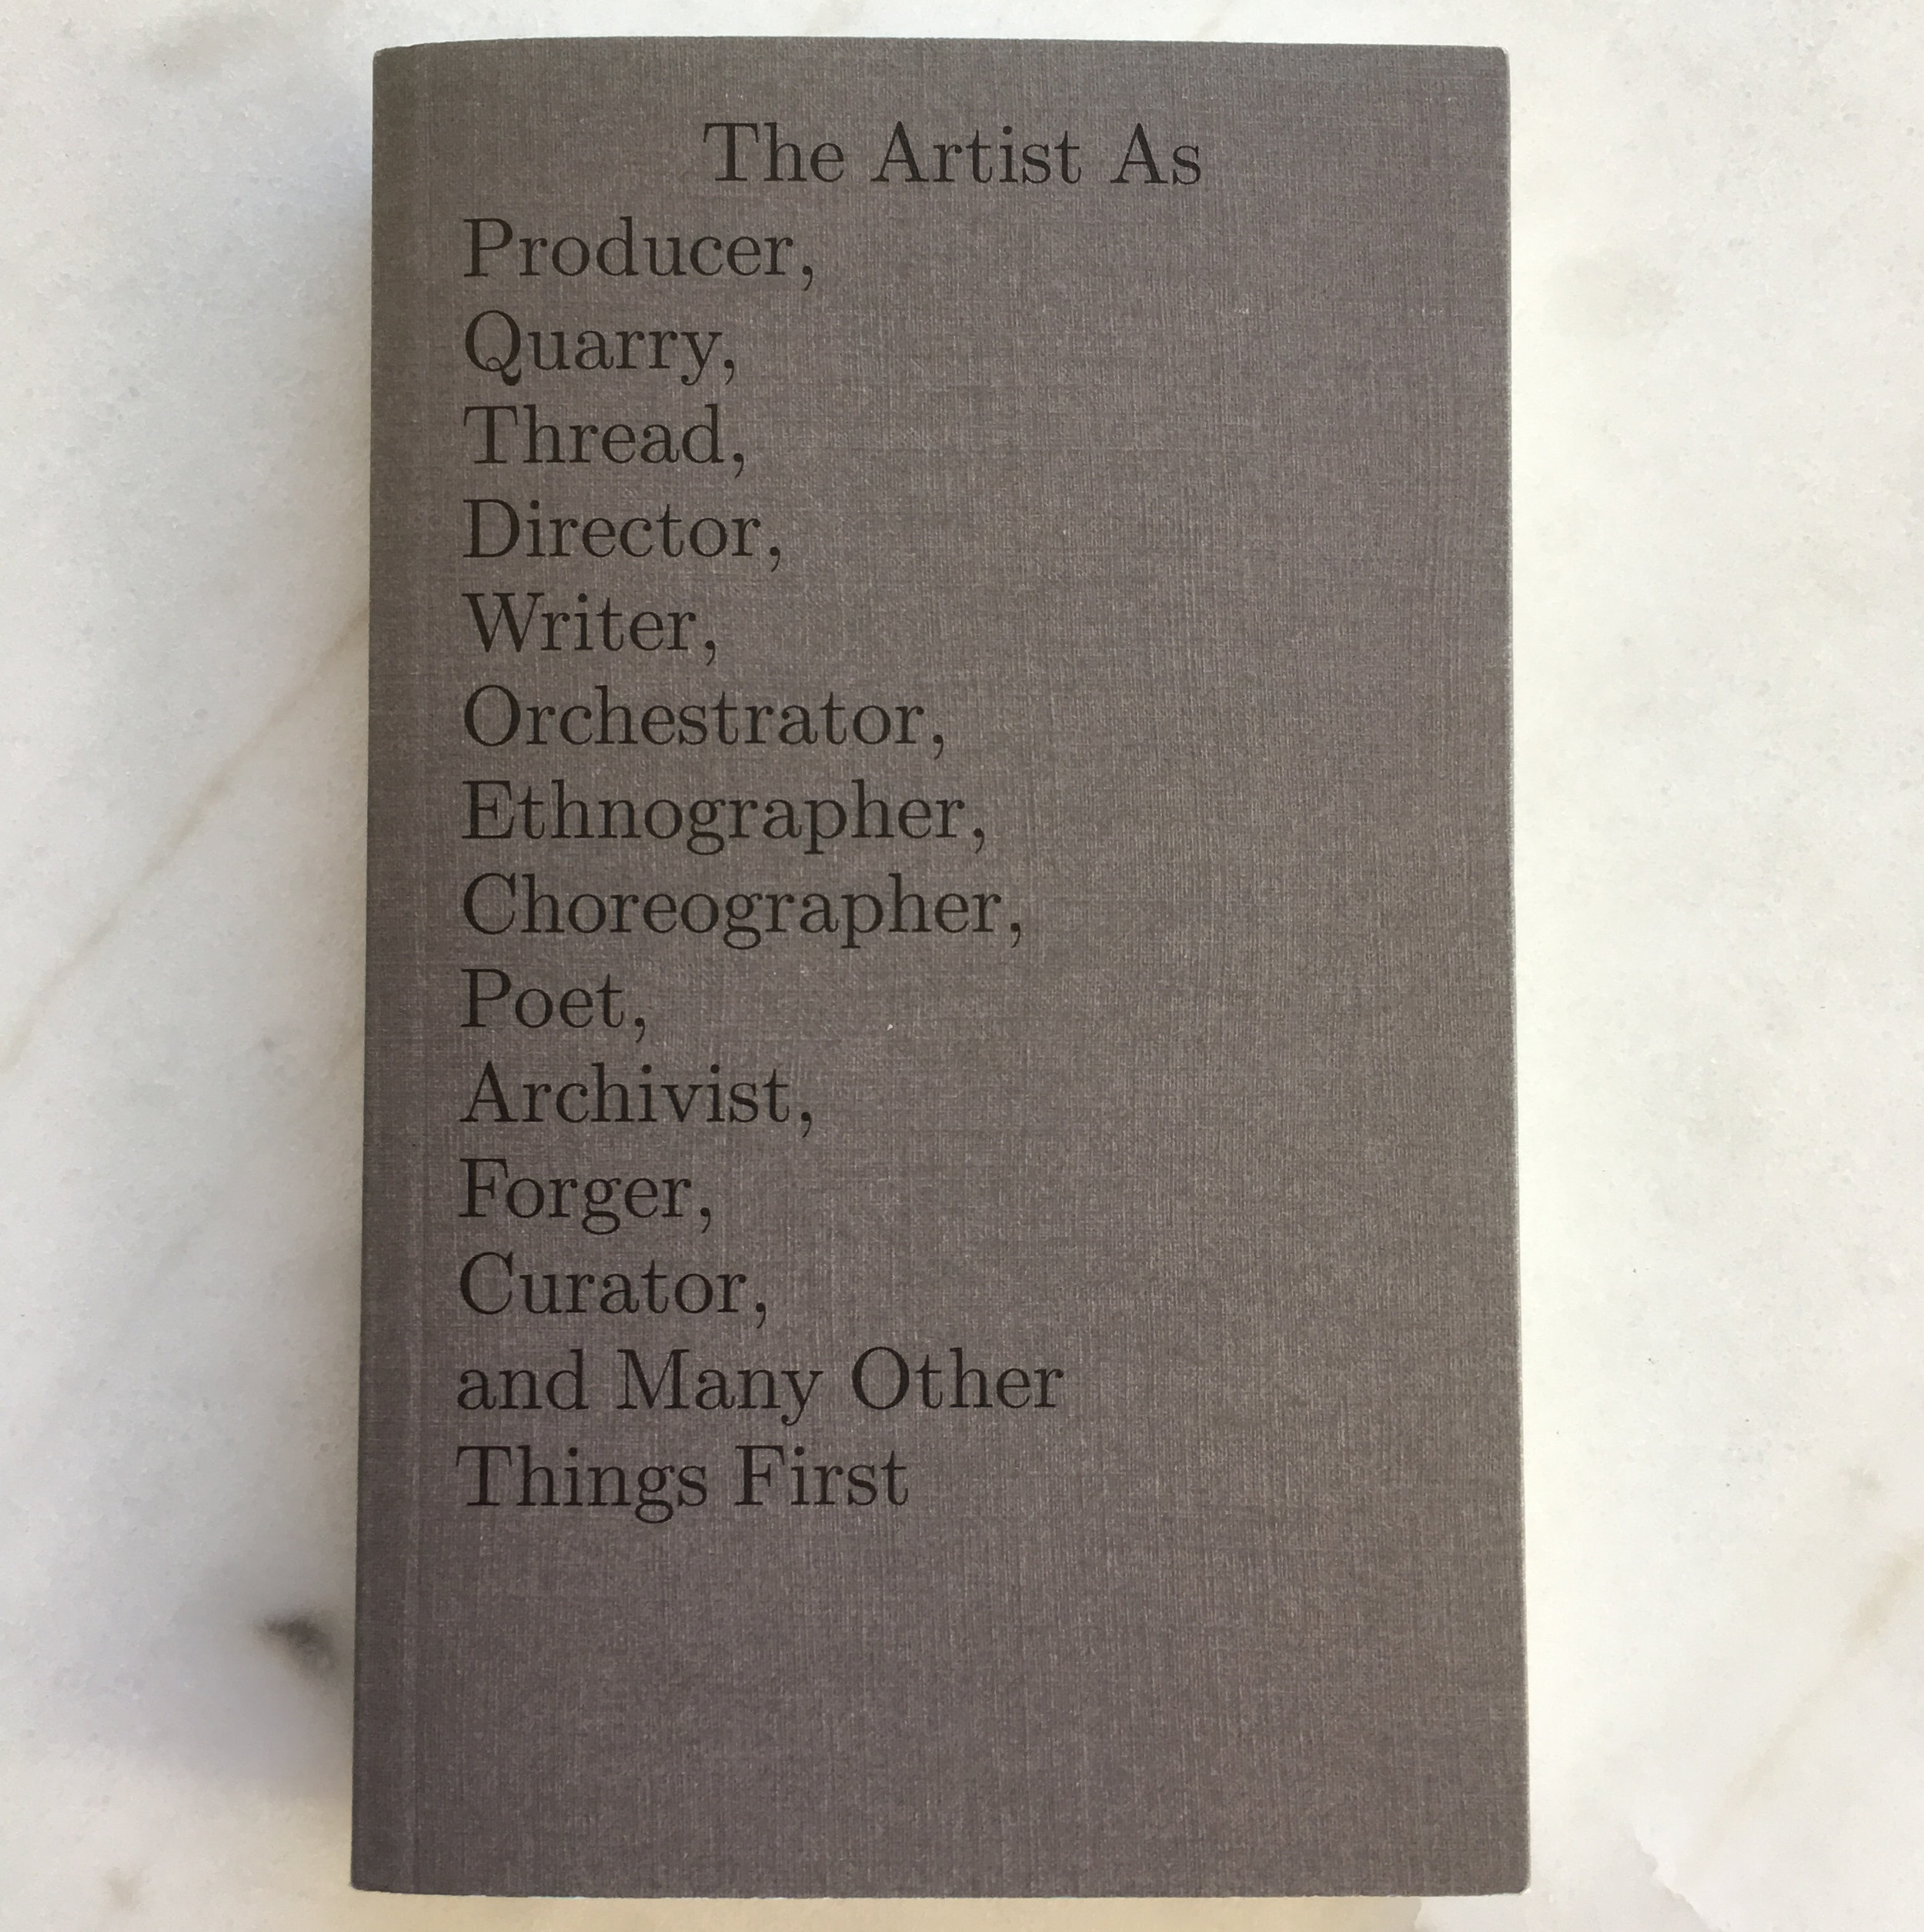 The Artist As , edited by Aileen Burns, John Lundh, and Tara McDowell (Berlin: Sternberg and Melbourne: Institute of Modern Art and Monash University, Faculty of Art, Design and Architecture, 2018).